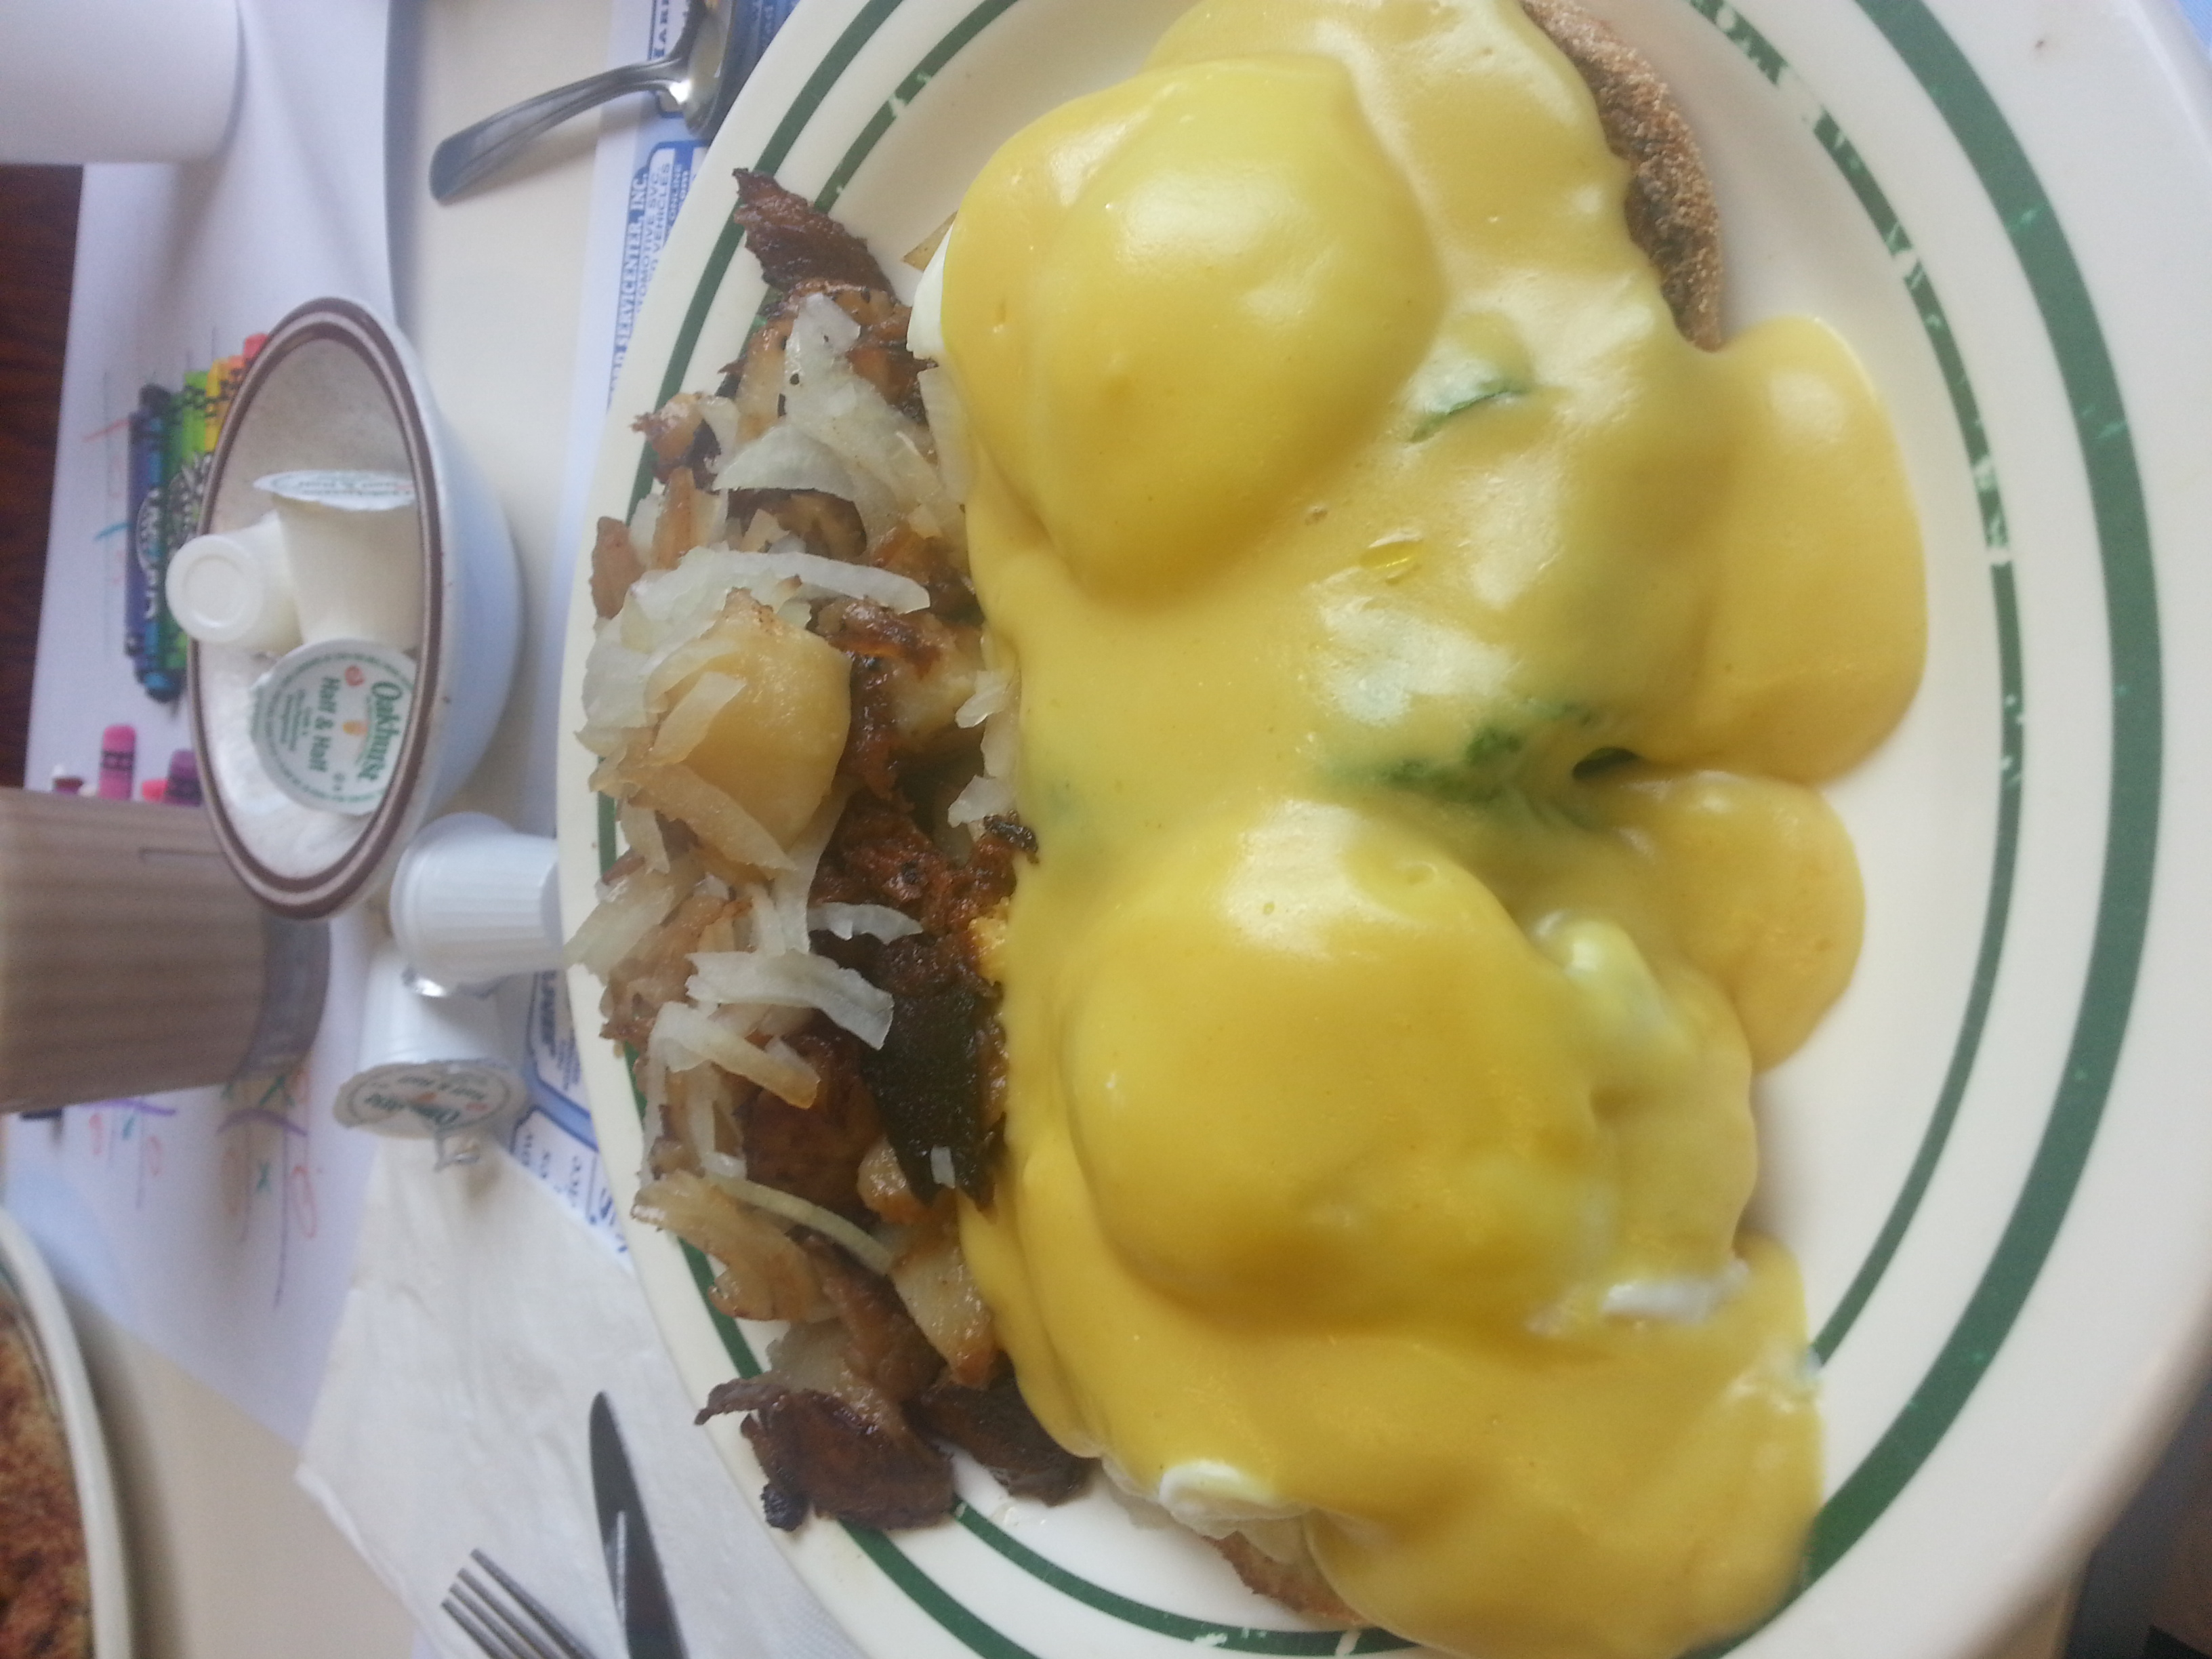 My eggs florentine with breakfast potatoes were scrumptious!